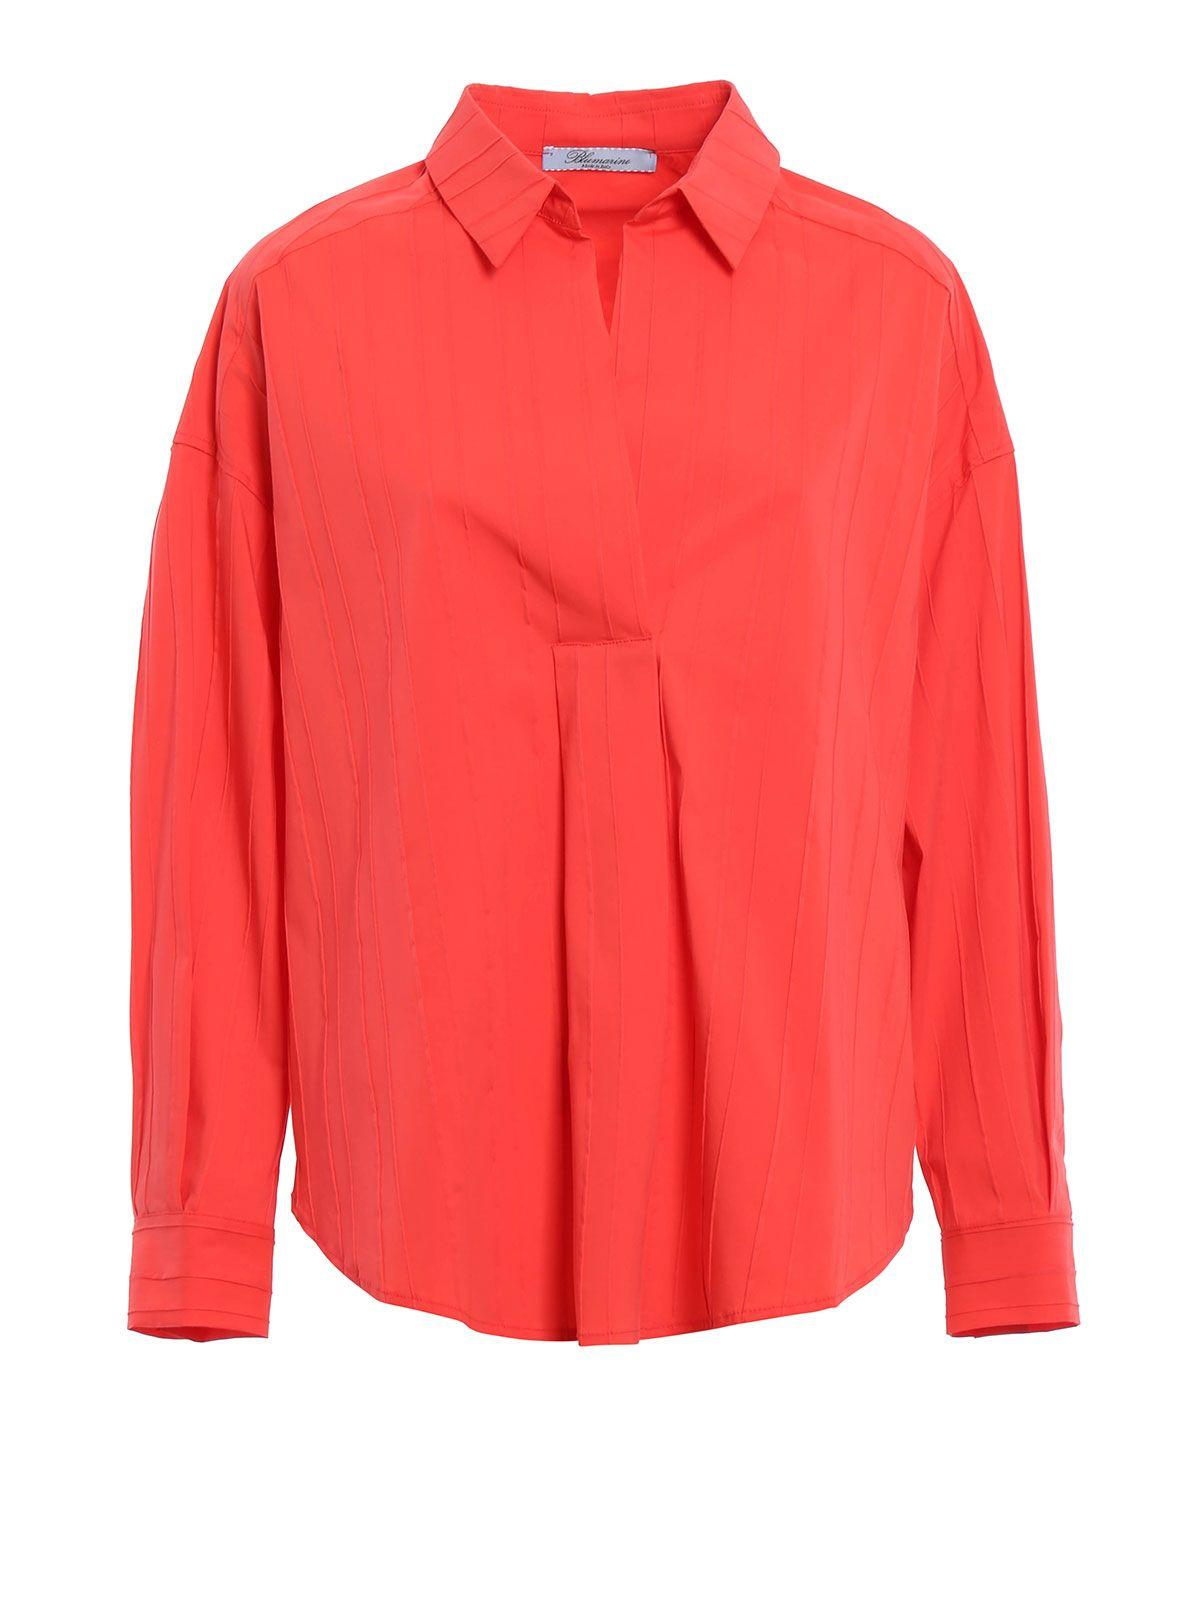 Blumarine Ribbed Polo Shirt In Red